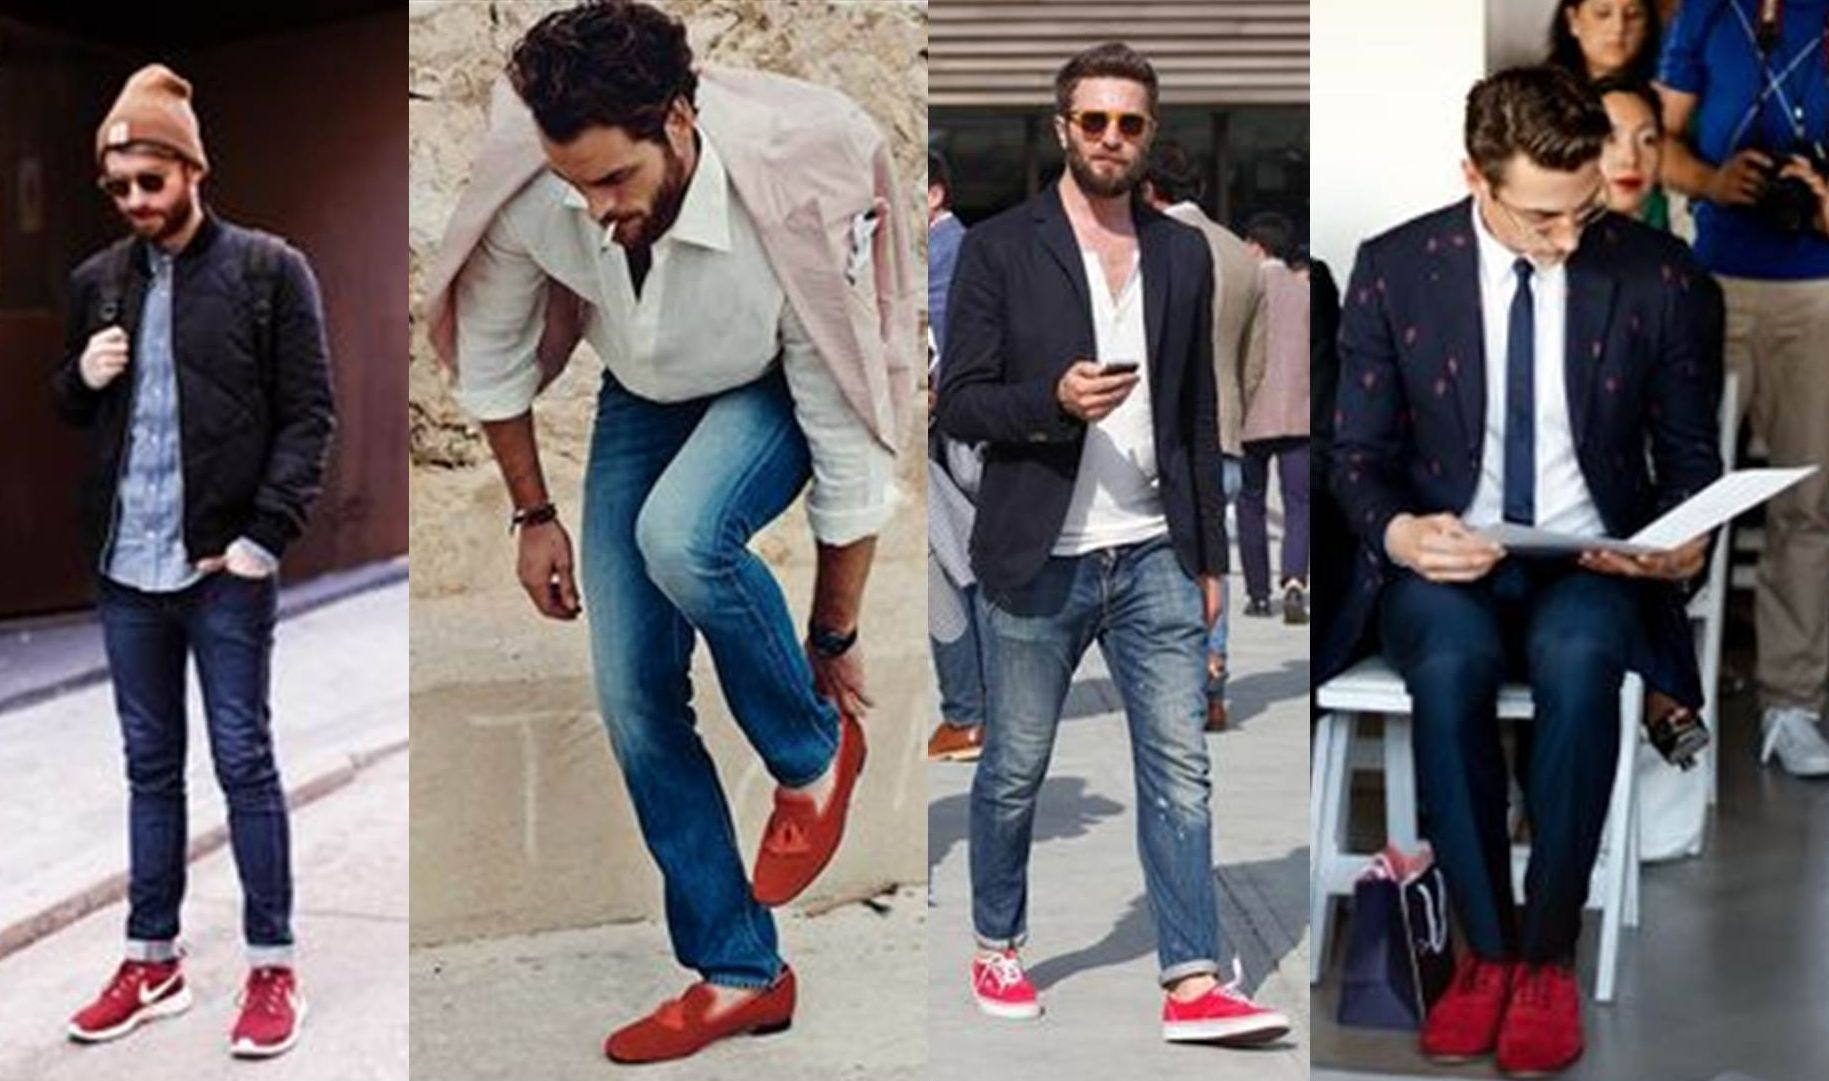 17 Best images about Red Shoes Idea on Pinterest | Vans sneakers ...